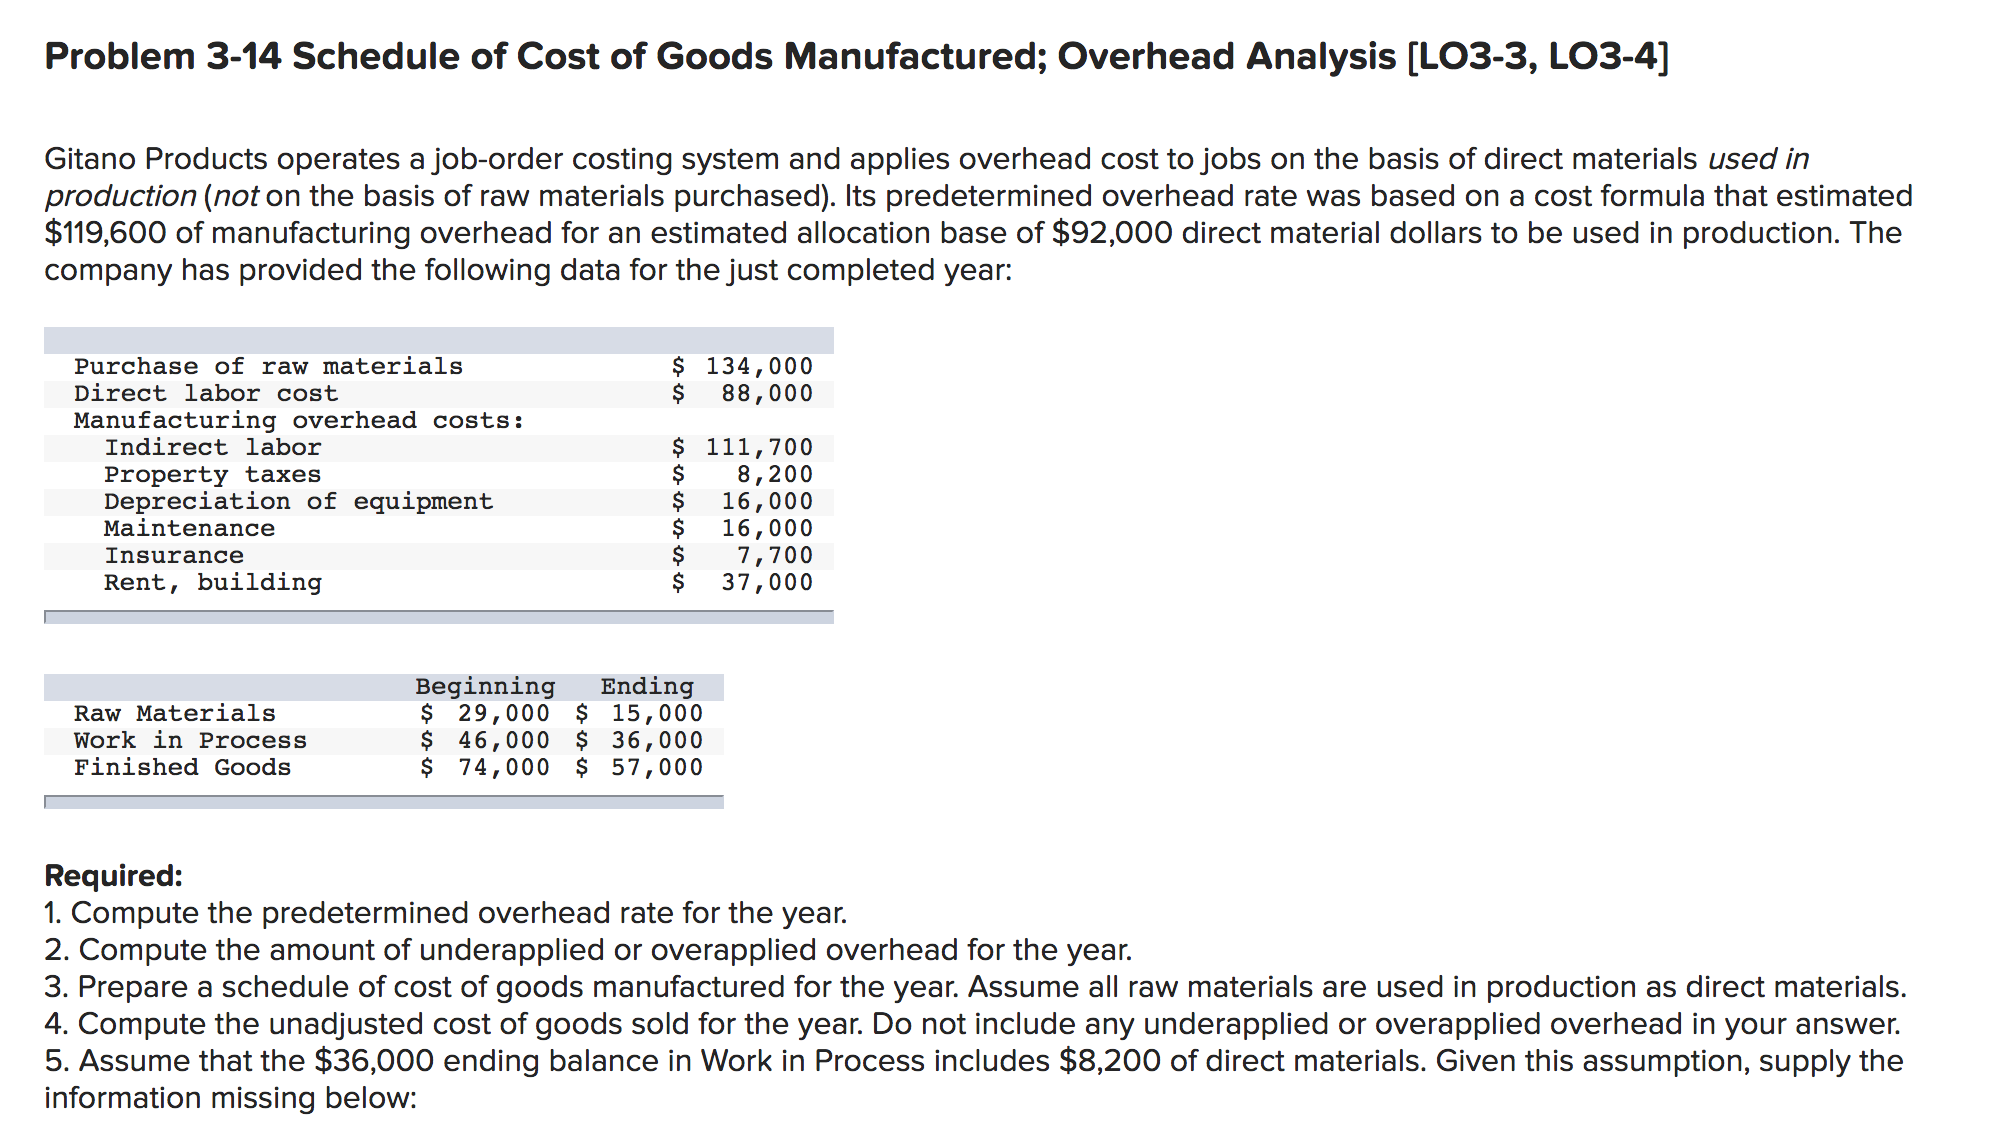 Problem 3-14 Schedule of Cost of Goods Manufactured; Overhead Analysis [LO3-3, LO3-4] Gitano Products operates a job-order costing system and applies overhead cost to jobs on the basis of direct materials used in production (not on the basis of raw materials purchased). Its predetermined overhead rate was based on a cost formula that estimated $119,600 of manufacturing overhead for an estimated allocation base of $92,000 direct material dollars to be used in production. The company has provided the following data for the just completed year: $ 134,000 88,000 Purchase of raw materials Direct labor cost Manufacturing overhead costs: Indirect labor $ 111,700 8,200 16,000 16,000 7,700 37,000 Property taxes Depreciation of equipment Maintenance Insurance Rent, building Beginning $ 29,000 $ 15,000 $ 46,000 $ 36,000 $ 74,000 $ 57,000 Ending Raw Materials Work in Process Finished Goods Required: 1. Compute the predetermined overhead rate for the year. 2. Compute the amount of underapplied or overapplied overhead for the year. 3. Prepare a schedule of cost of goods manufactured for the year. Assume all raw materials are used in production as direct materials. 4. Compute the unadjusted cost of goods sold for the year. Do not include any underapplied or overapplied overhead in your answer. 5. Assume that the $36,000 ending balance in Work in Process includes $8,200 of direct materials. Given this assumption, supply the information missing below: